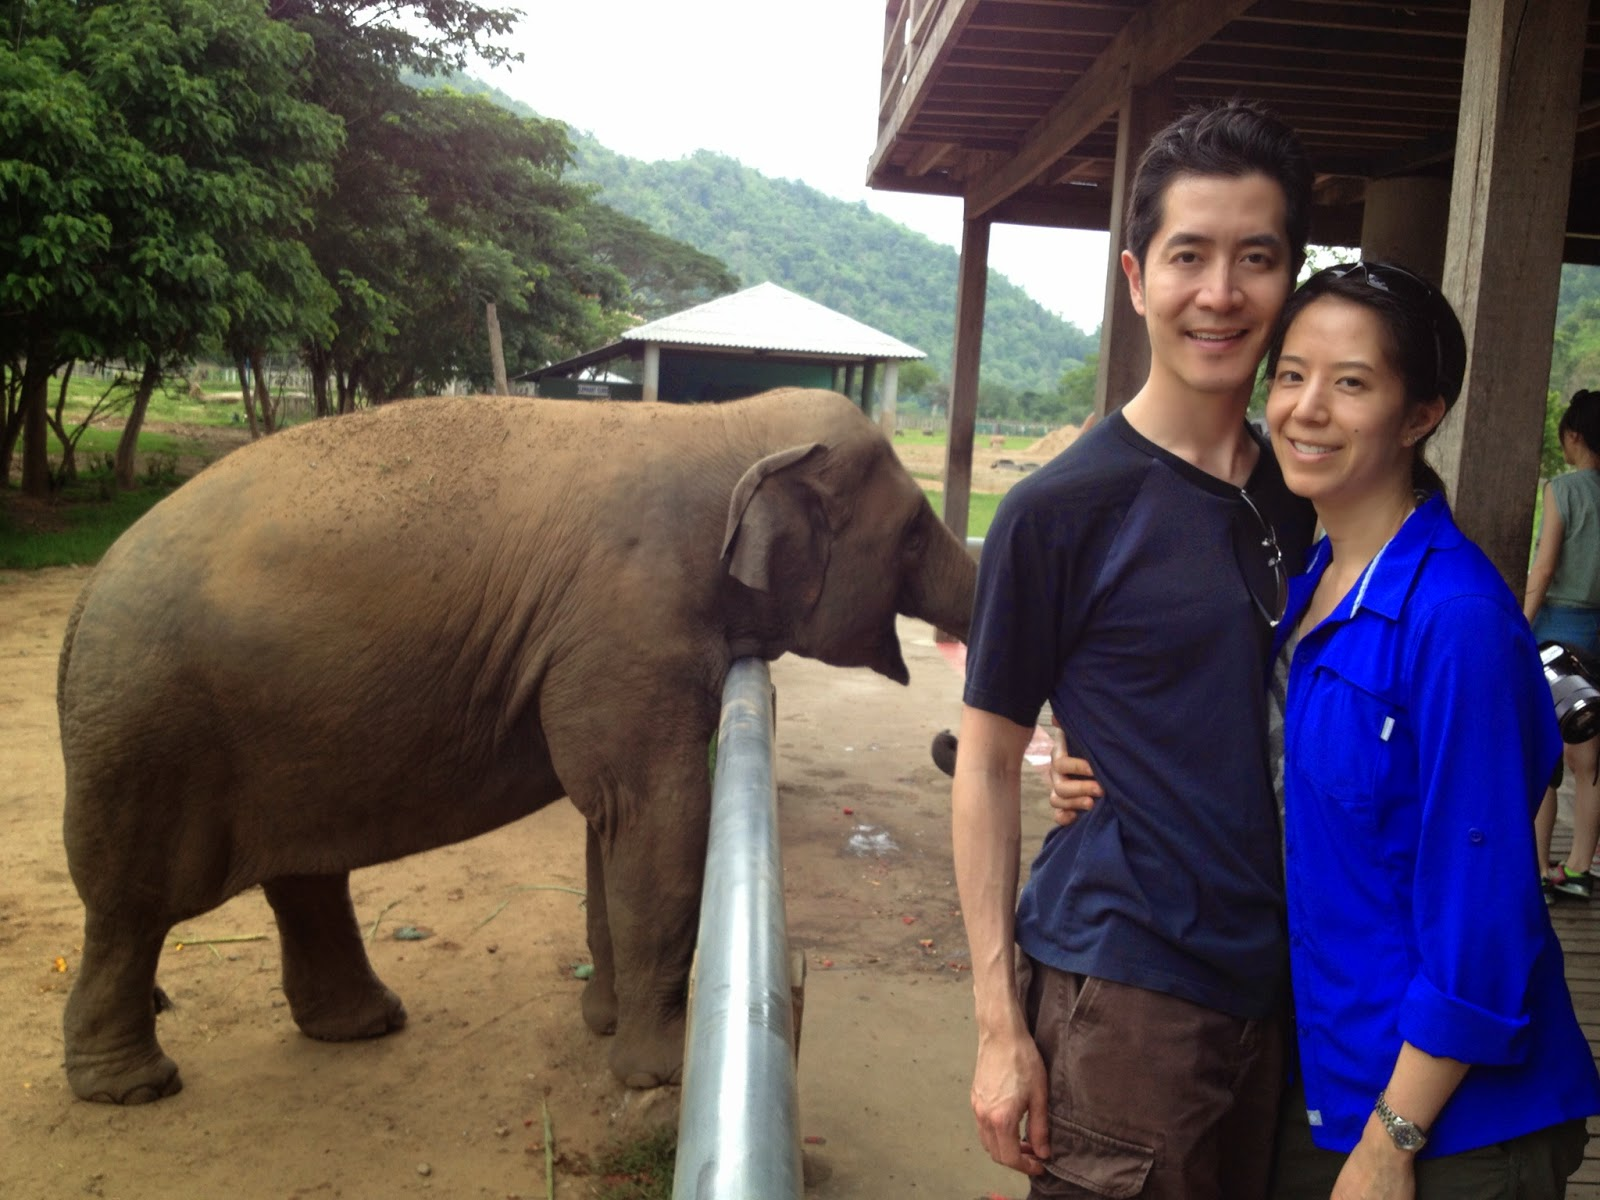 Chiang Mai - Getting ready to feed the elephants